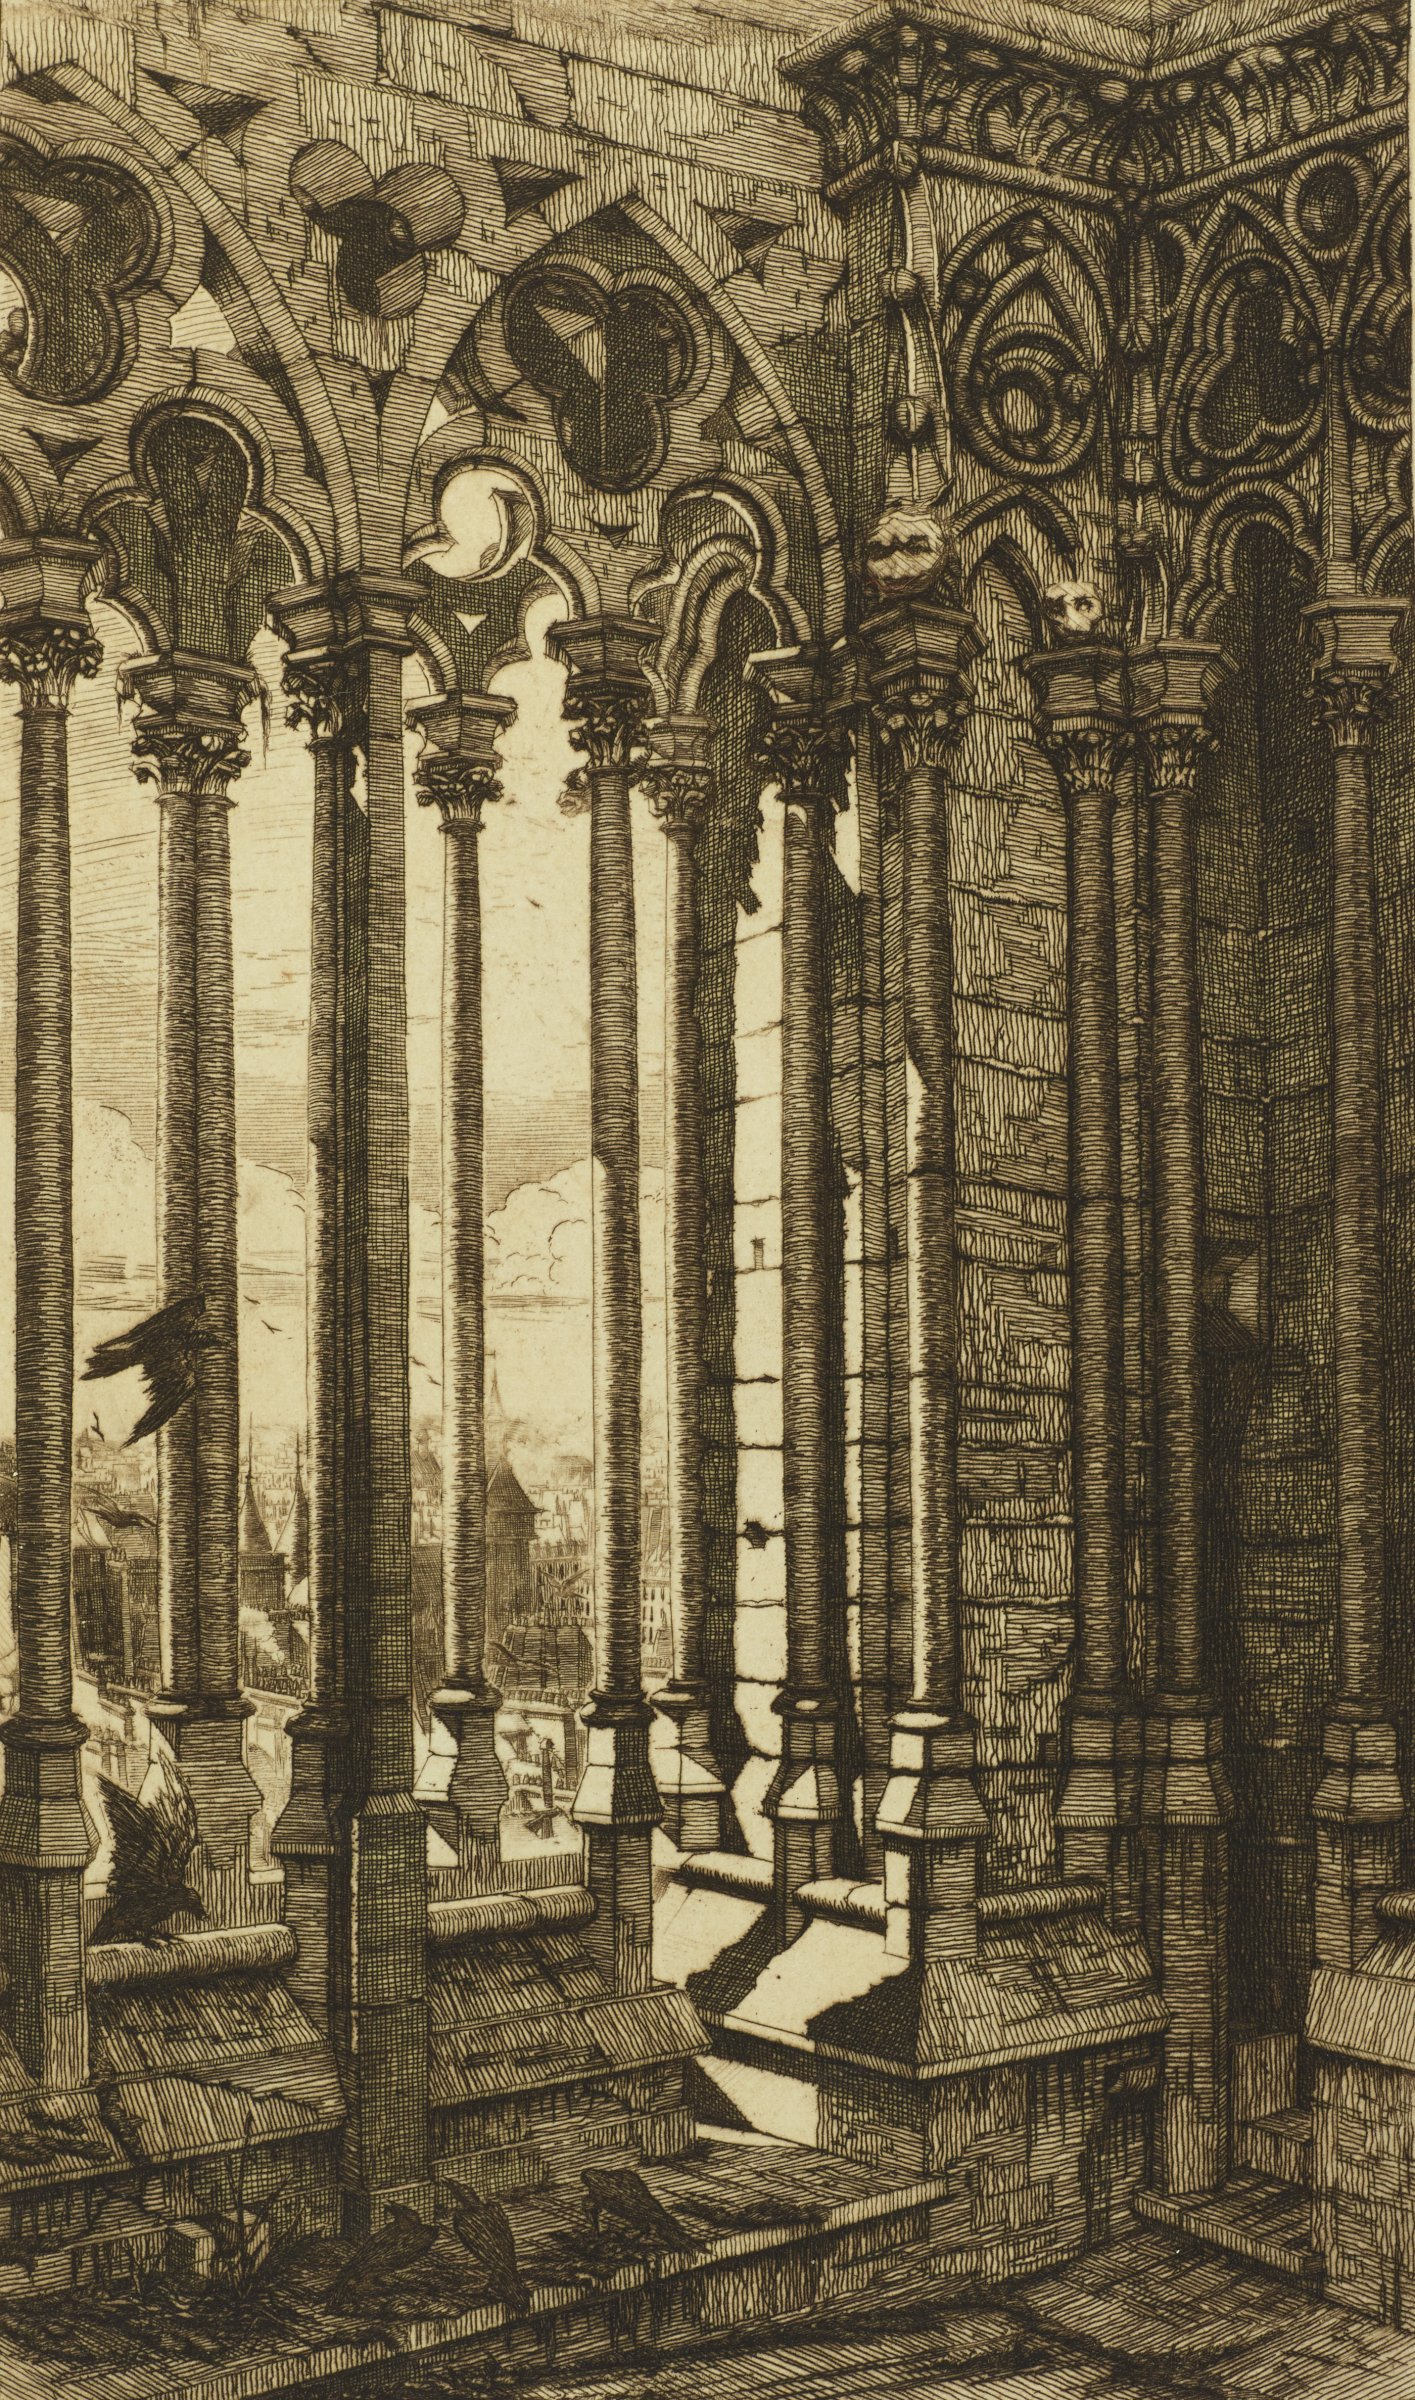 View of an upper opening of Notre Dame Cathedral. Several birds fly into the room and land on the step below. Paris is barely seen through the columns.